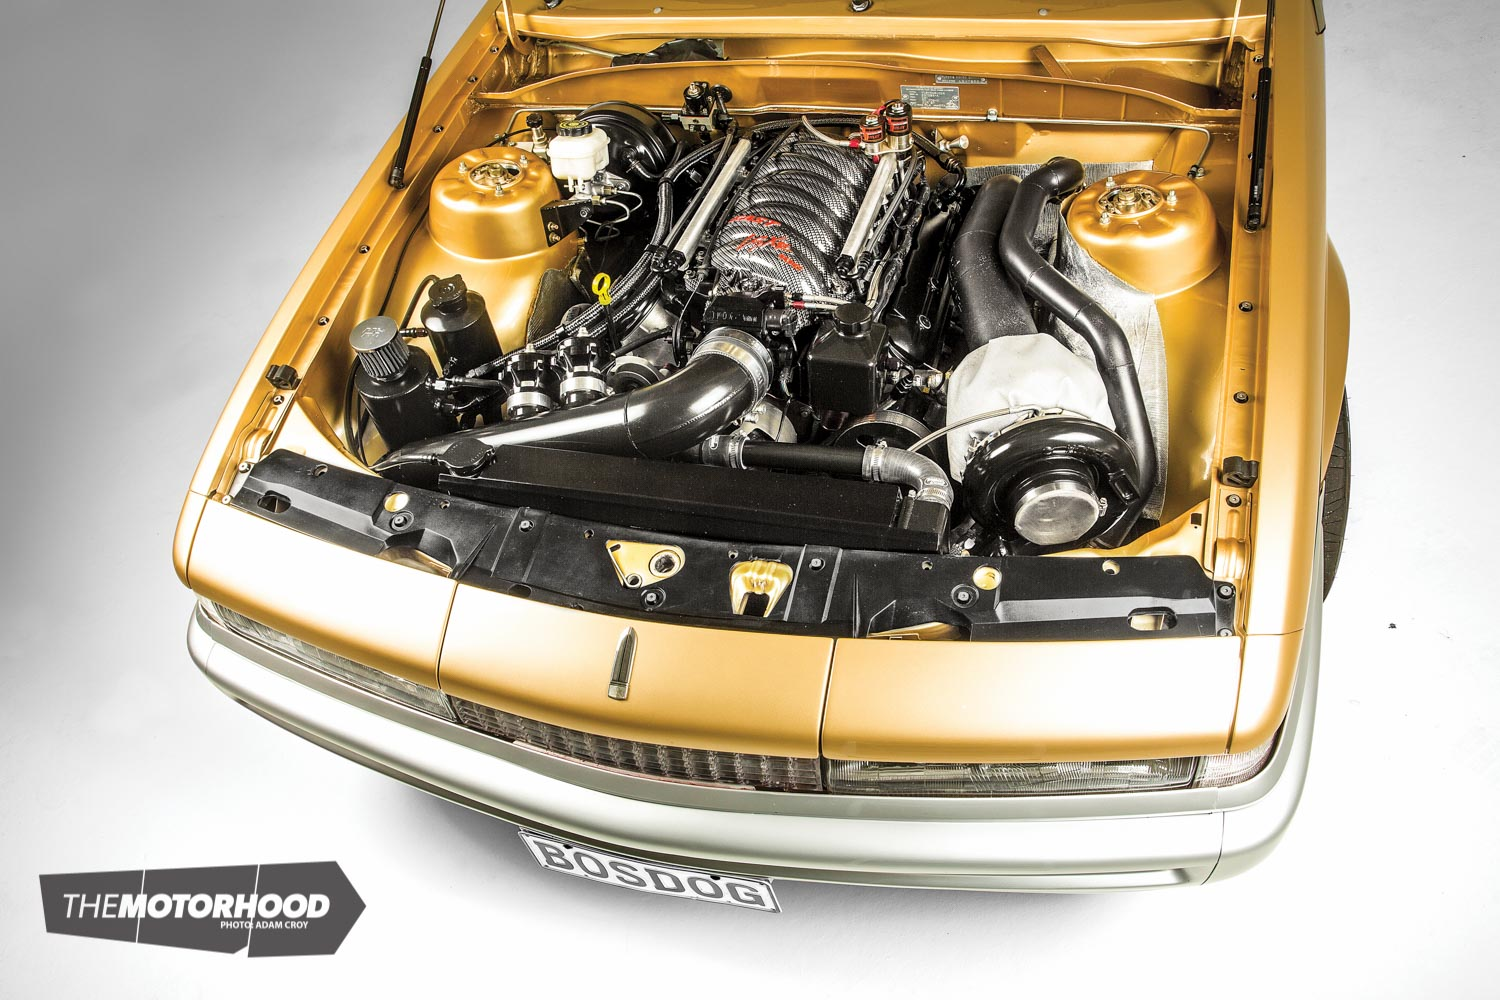 Meet 'BOSDOG': the show-stopping VL packing a 1000hp turbo